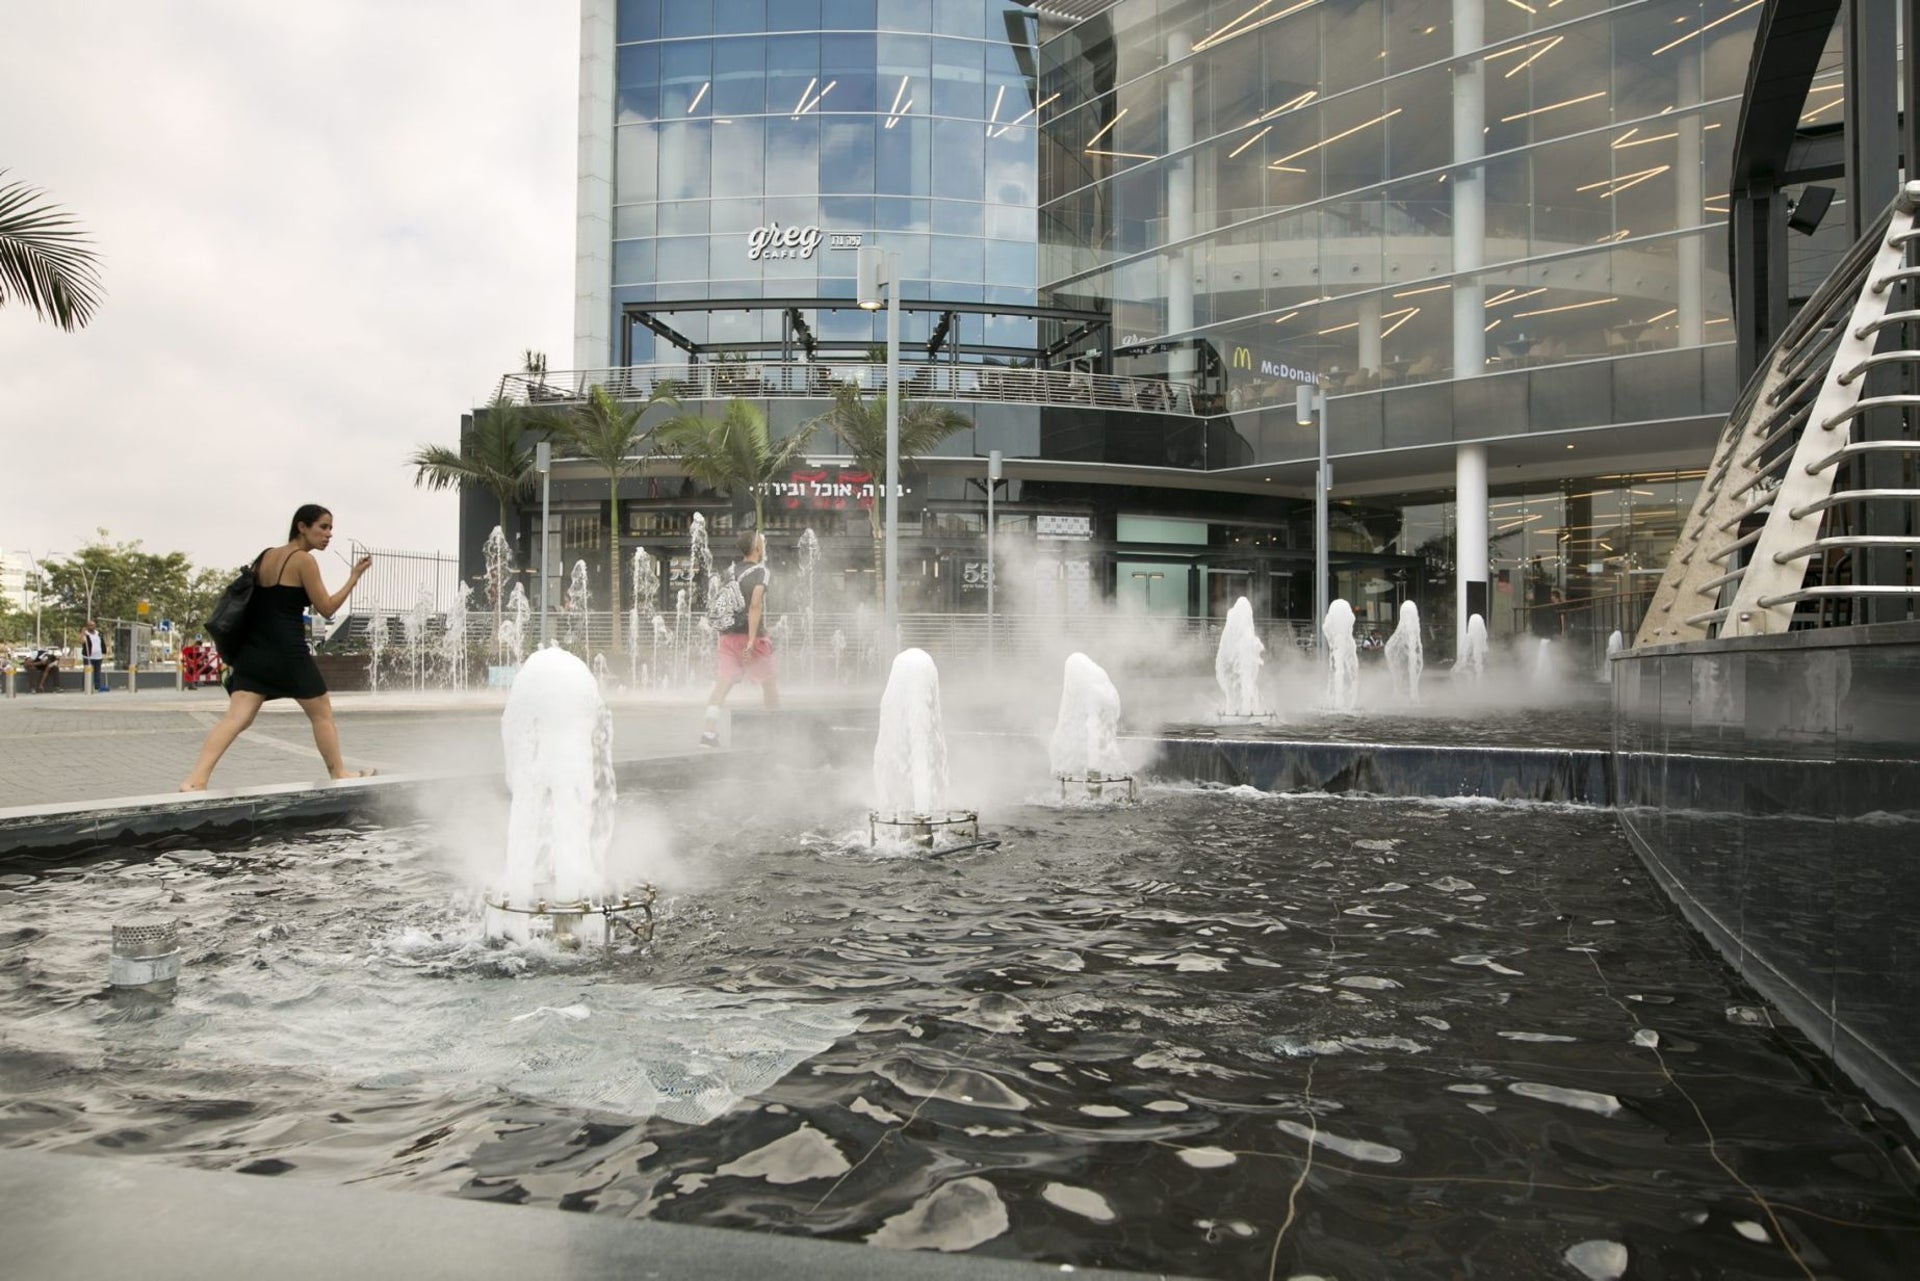 """The Oshiland mall in Kfar Sava. Some residents warn against the city becoming """"another Bnei Brak."""""""